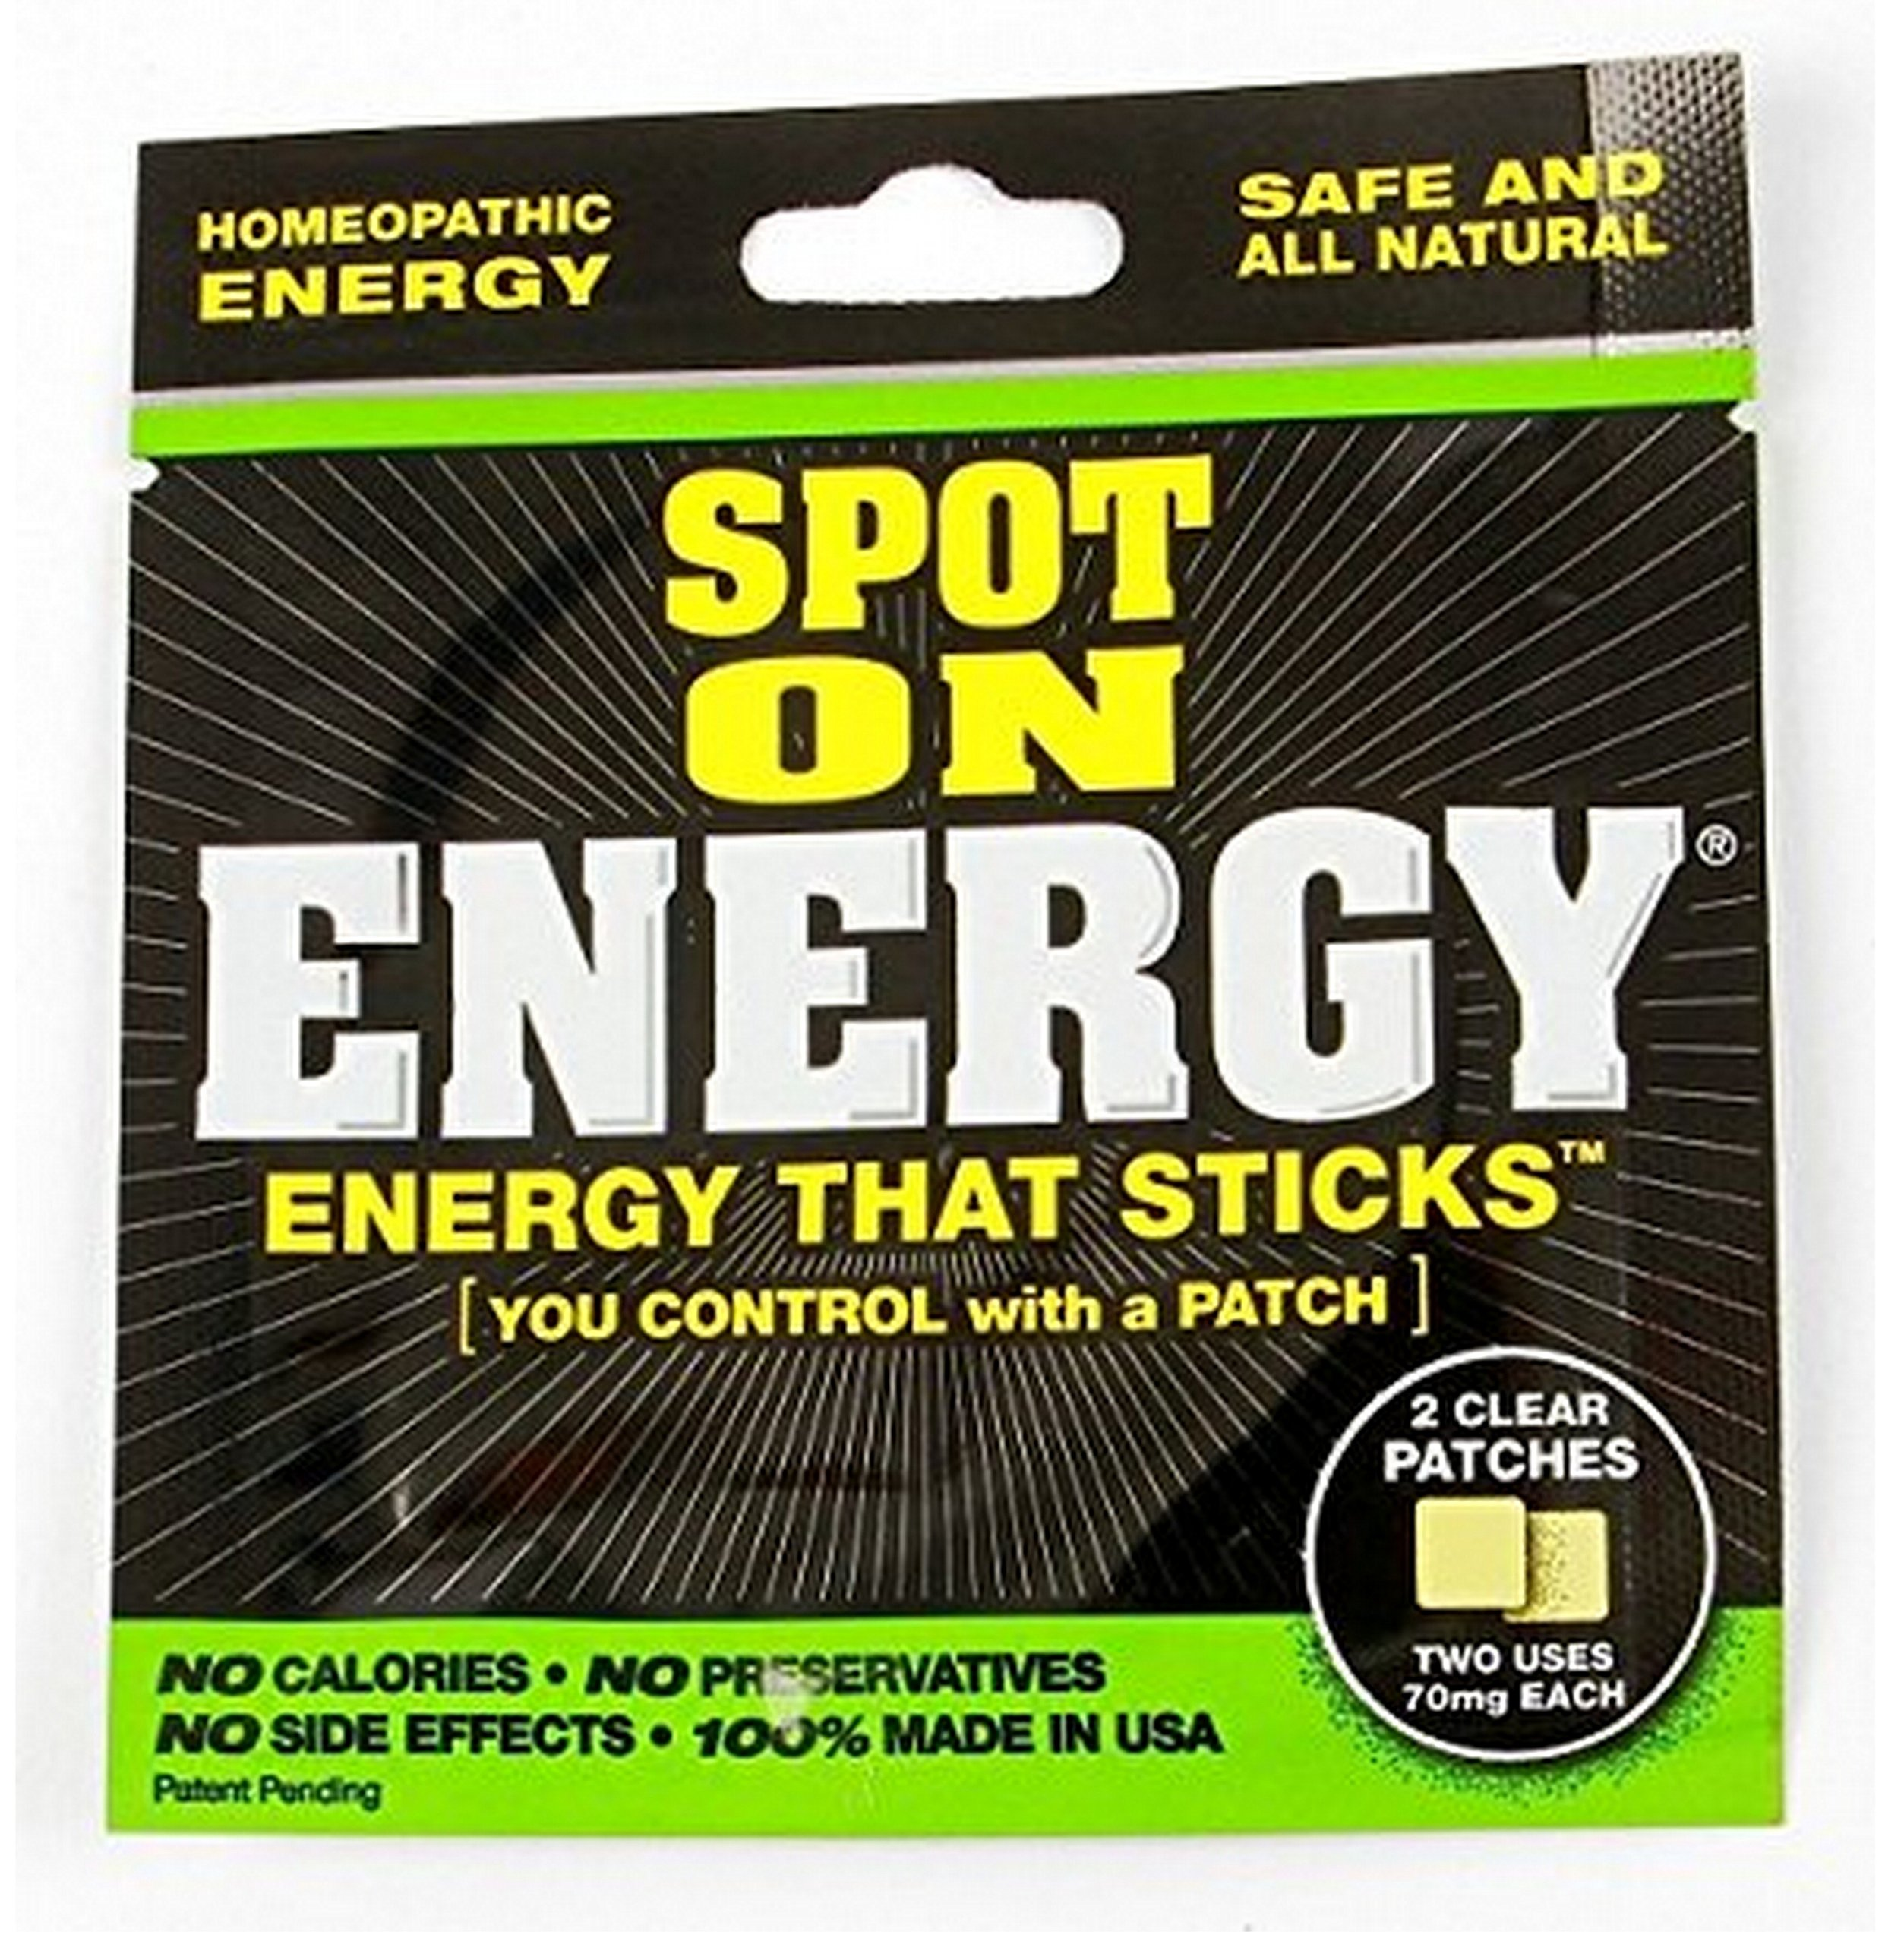 Homeopathic energy Spot On Energy all natural - 10 pack (20 patches)